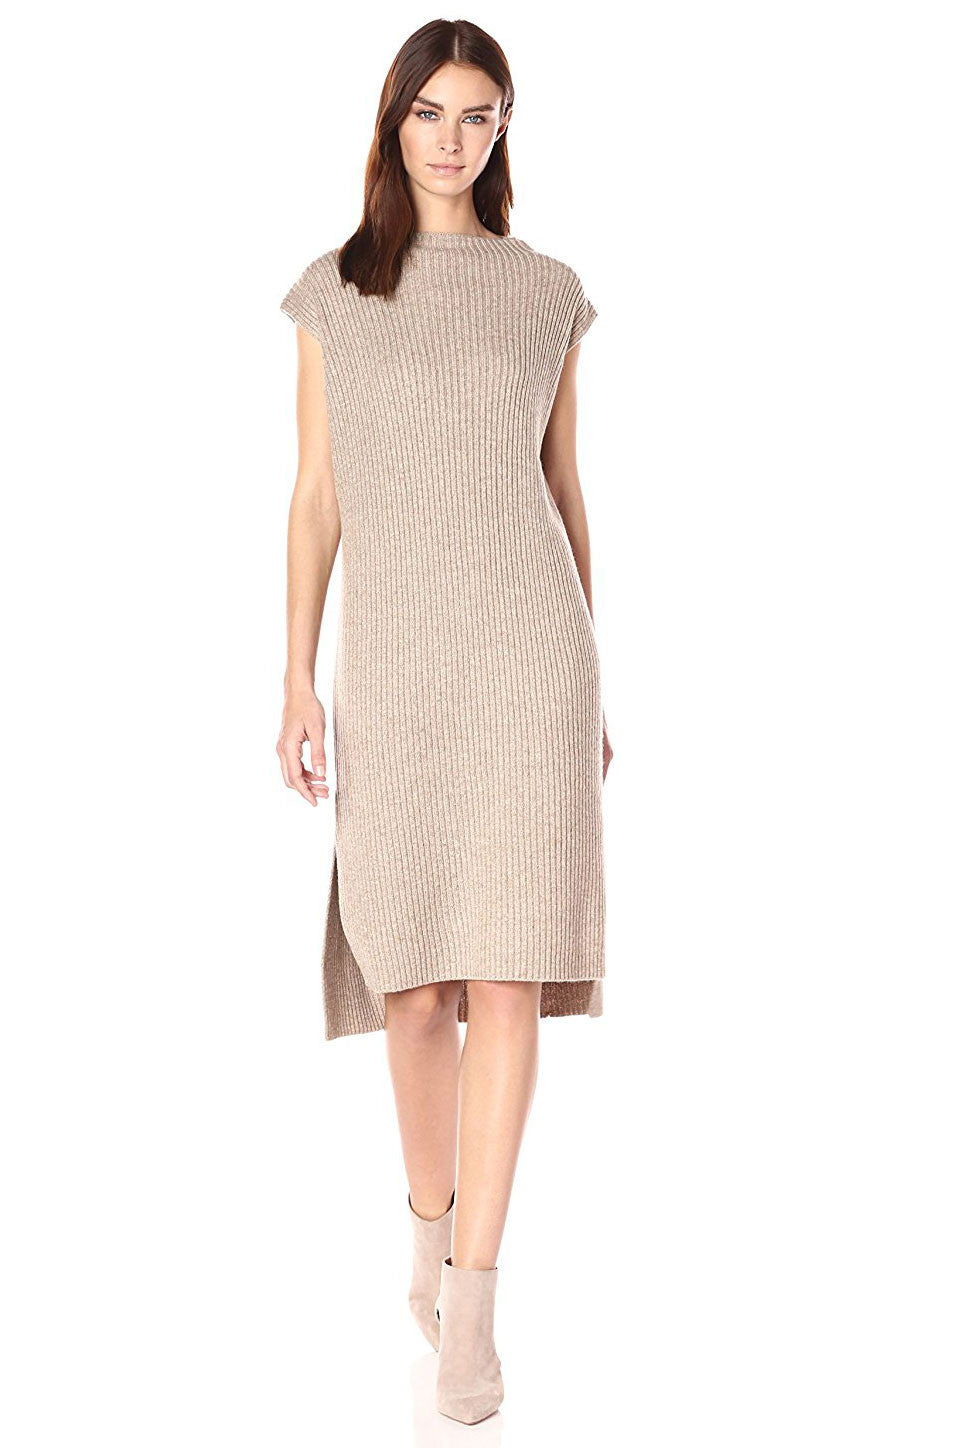 Womens cute fall outfits & sweater dresses: Sleeveless midi sweater dress. Fall dresses. Winter wear. cream mocha